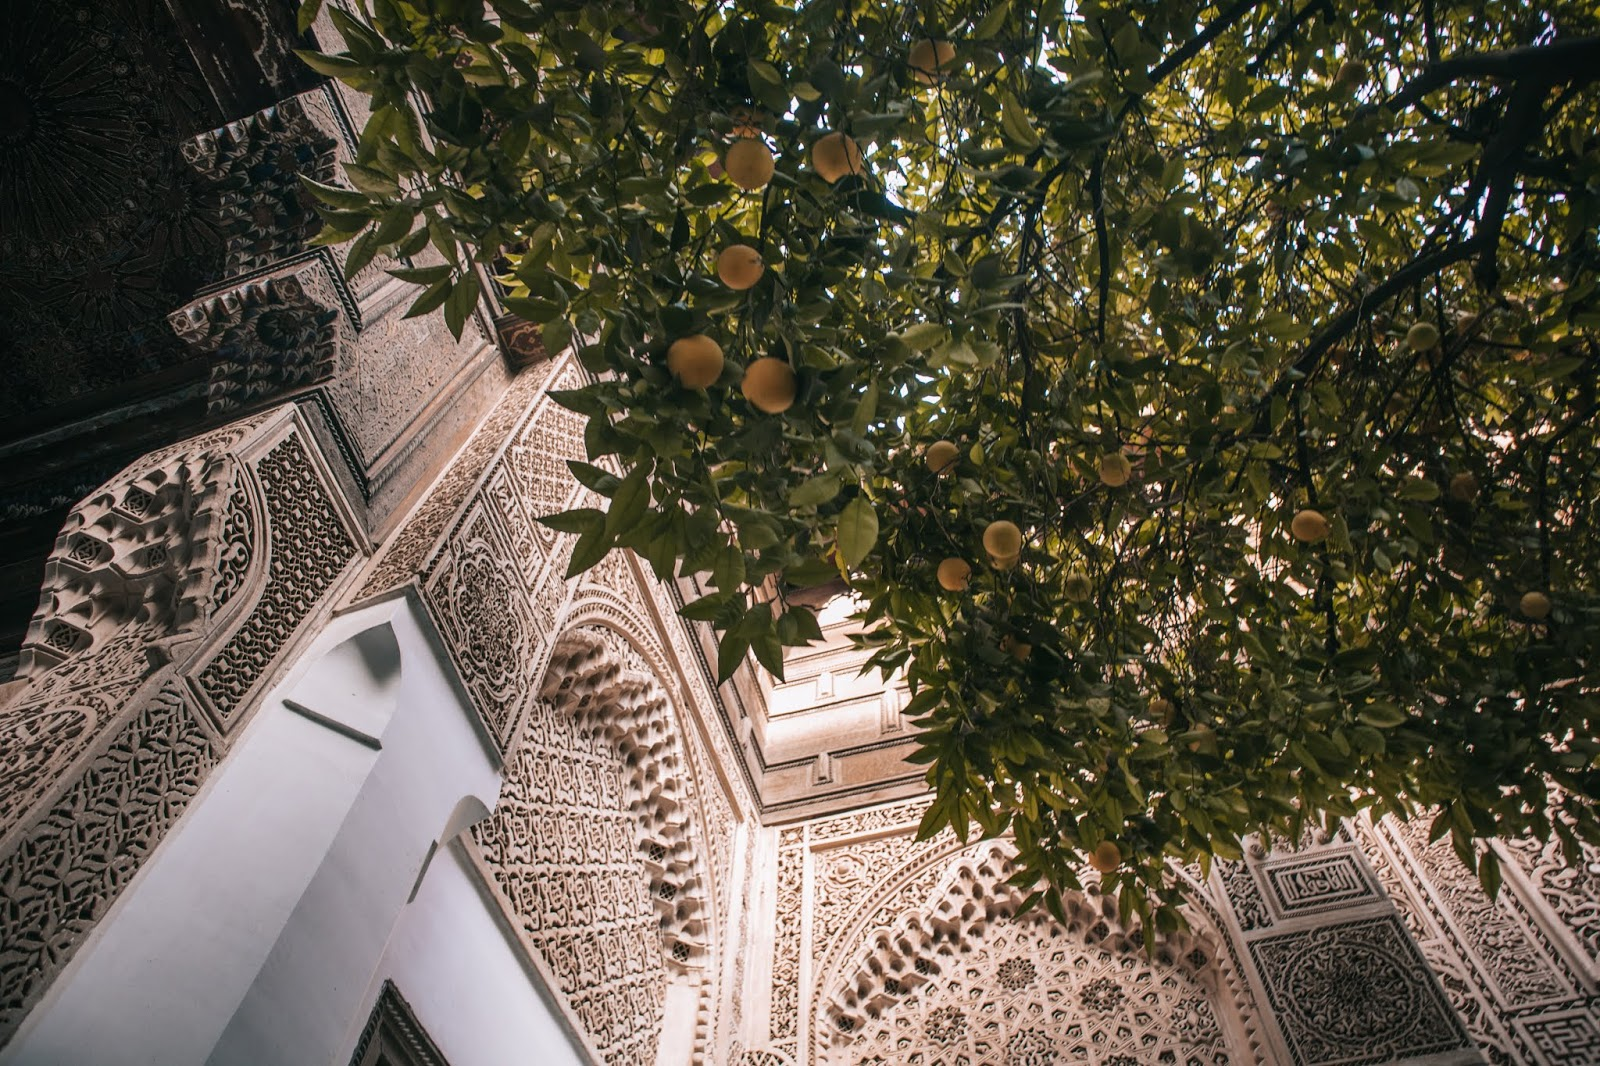 impressions of Marrakesh, Marrakech November 2018, Marrakesh November, Marrakesh travel, Suz and the Sun Travels, Suz & the Sun,  Bahia Palace, Marrakesh Orange tree